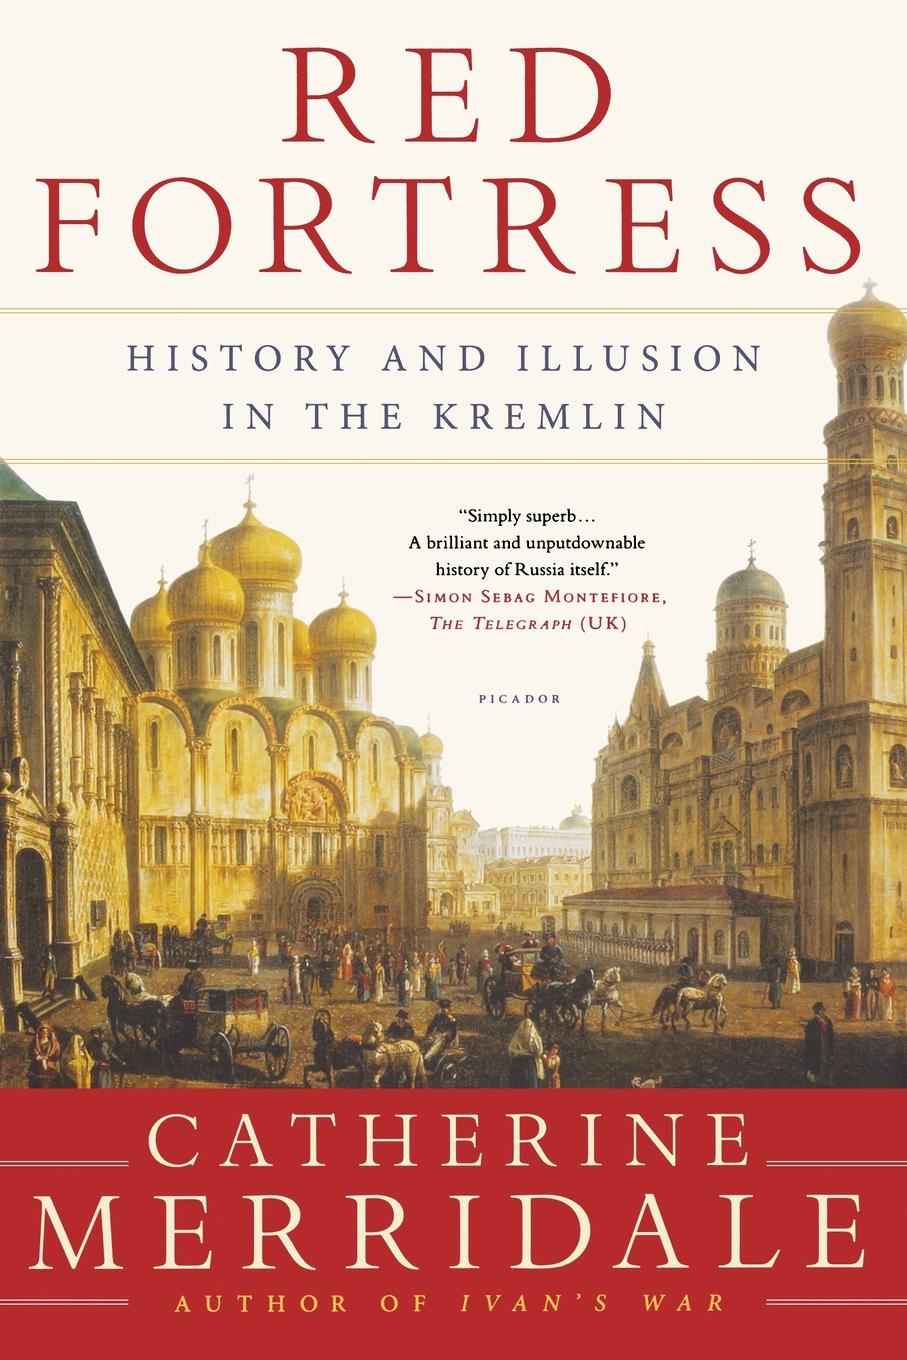 RED FORTRESS. CATHERINE MERRIDALE